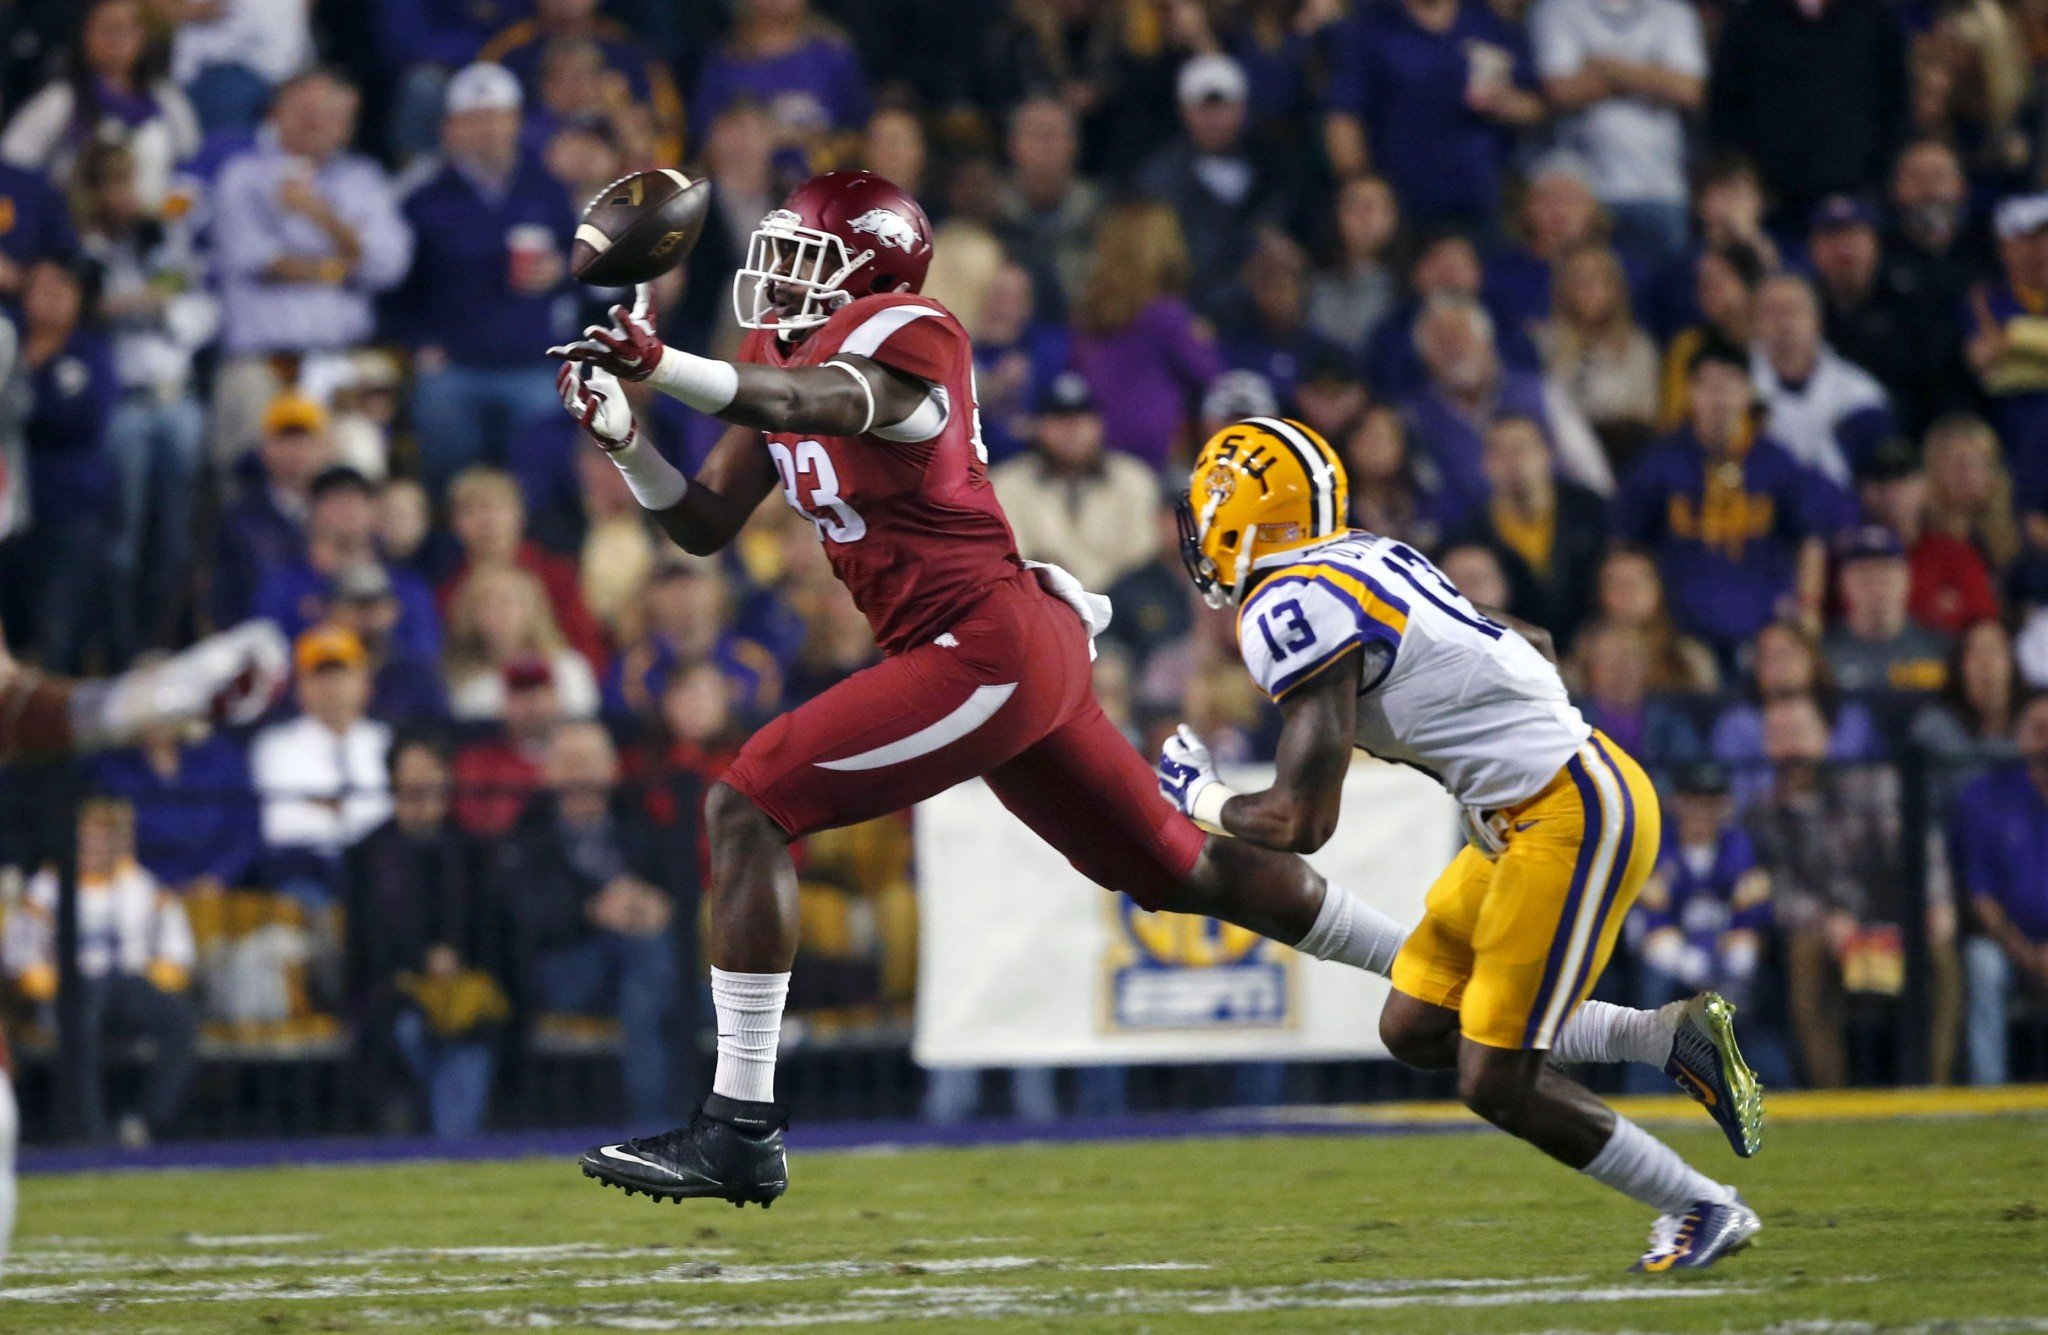 Arkansas TE Jeremy Sprinkle, left, has had to face his shoplifting incident head on. (AP)